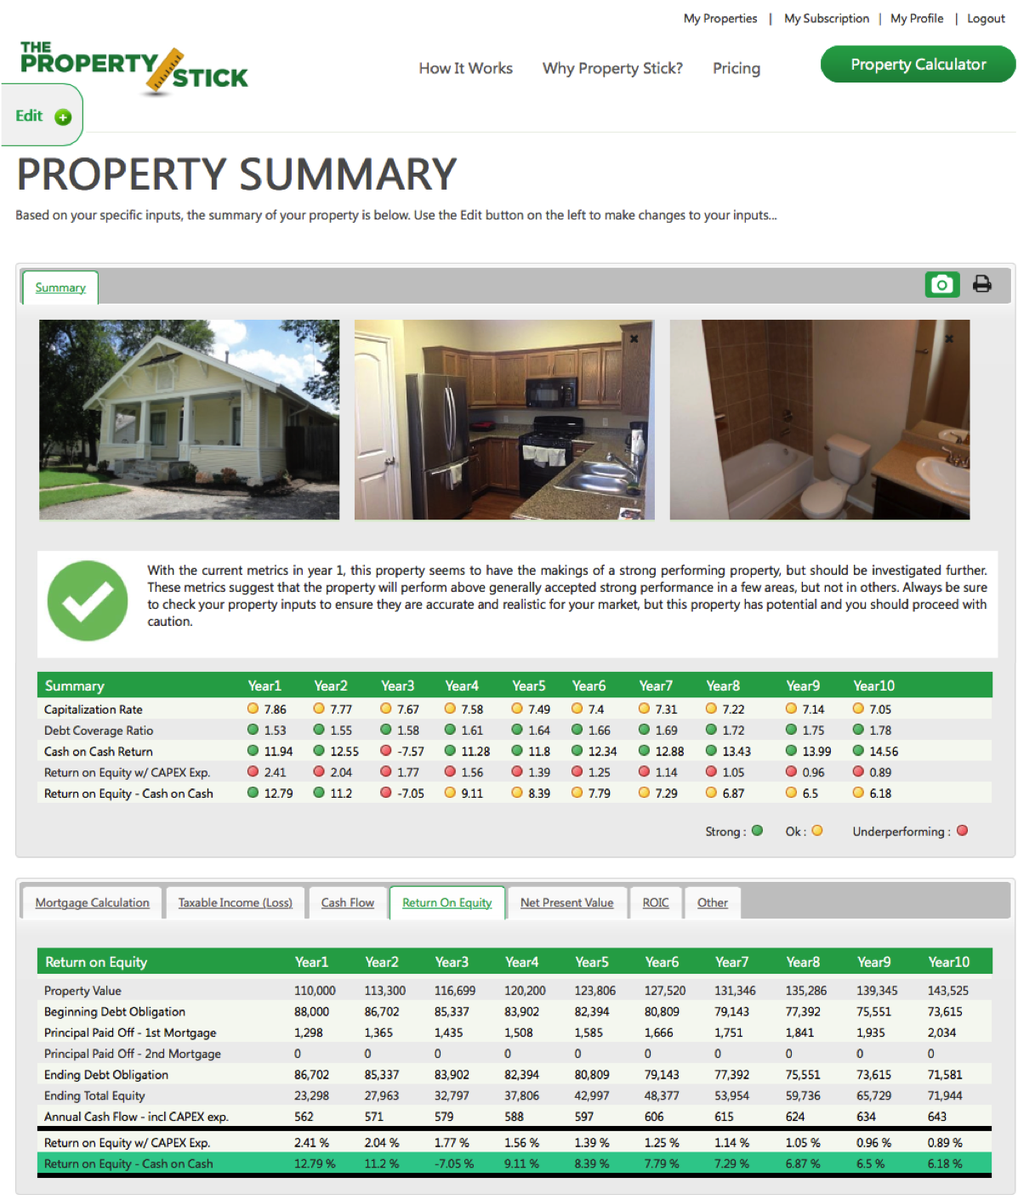 The Property Stick (@PropertyStick) | Twitter